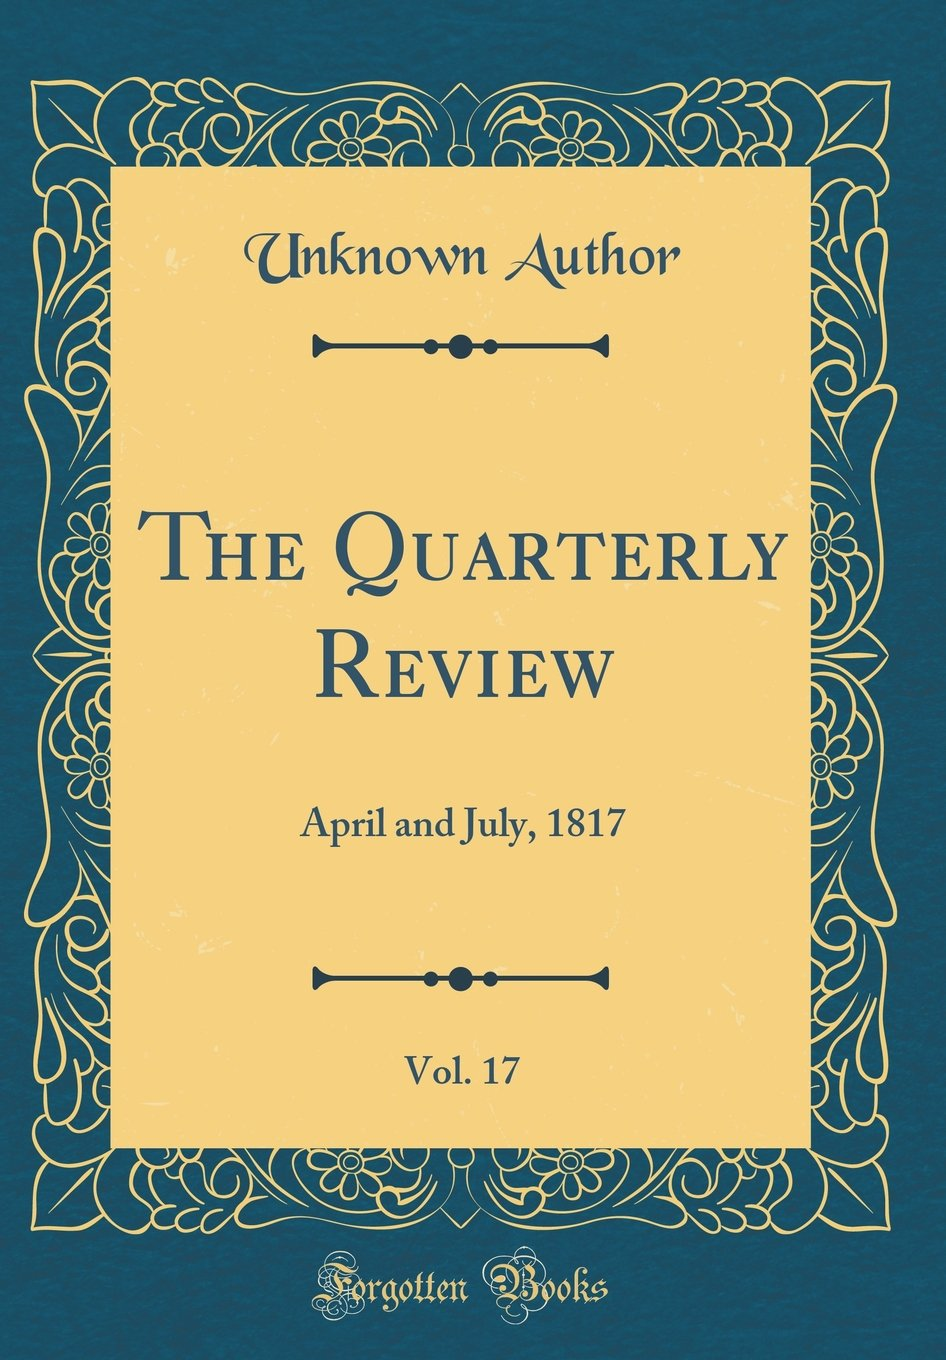 The Quarterly Review, Vol. 17: April and July, 1817 (Classic Reprint) ebook